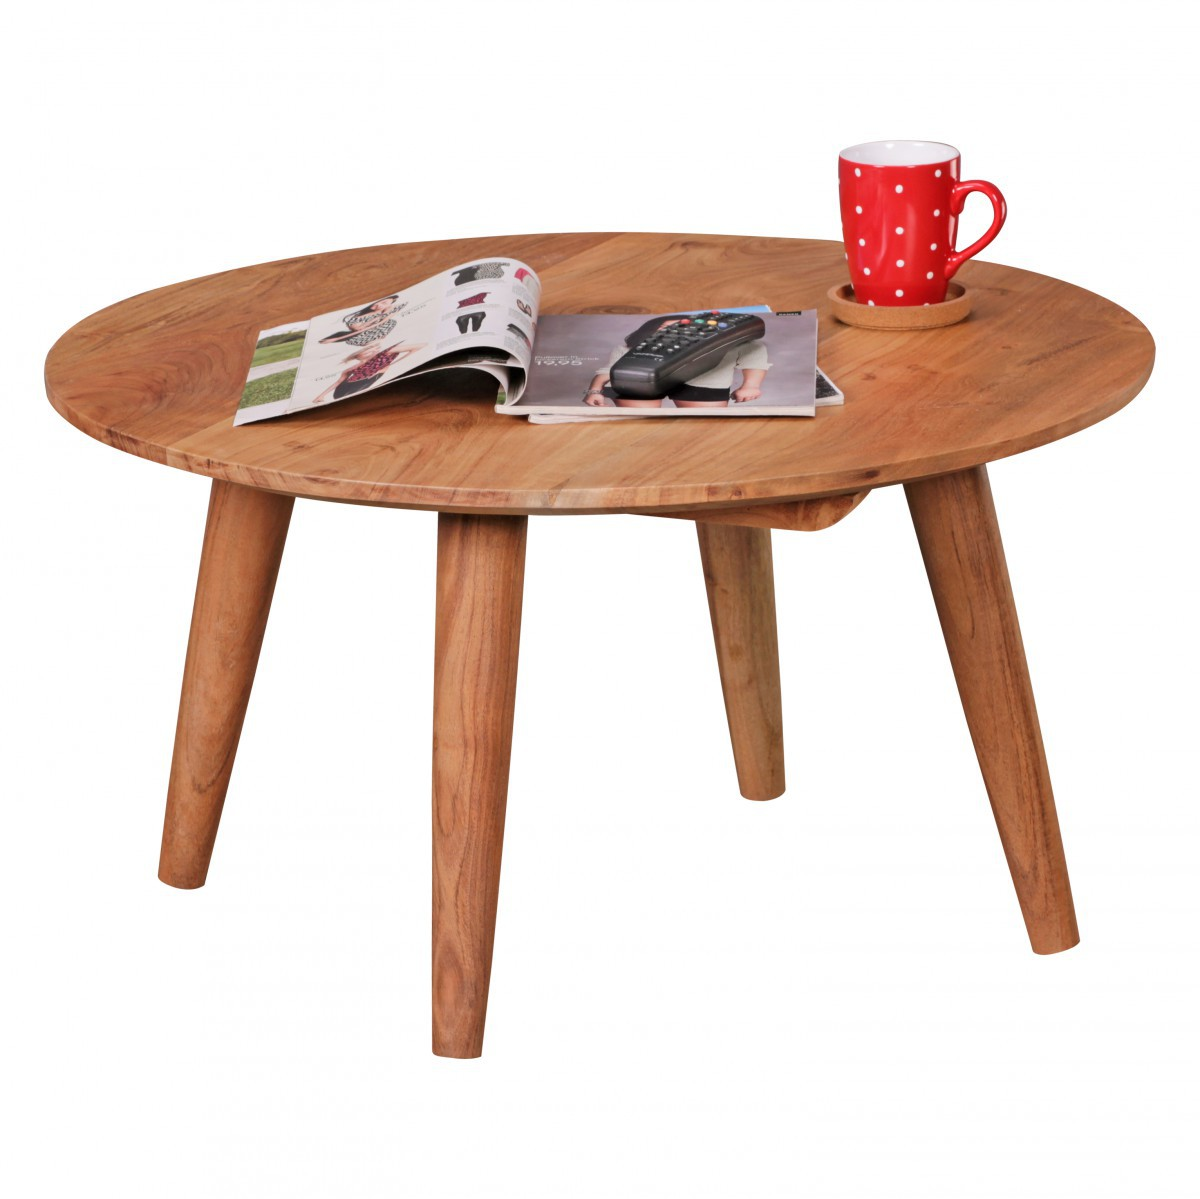 Finebuy table basse en bois massif acacia table basse for Table bois massif moderne